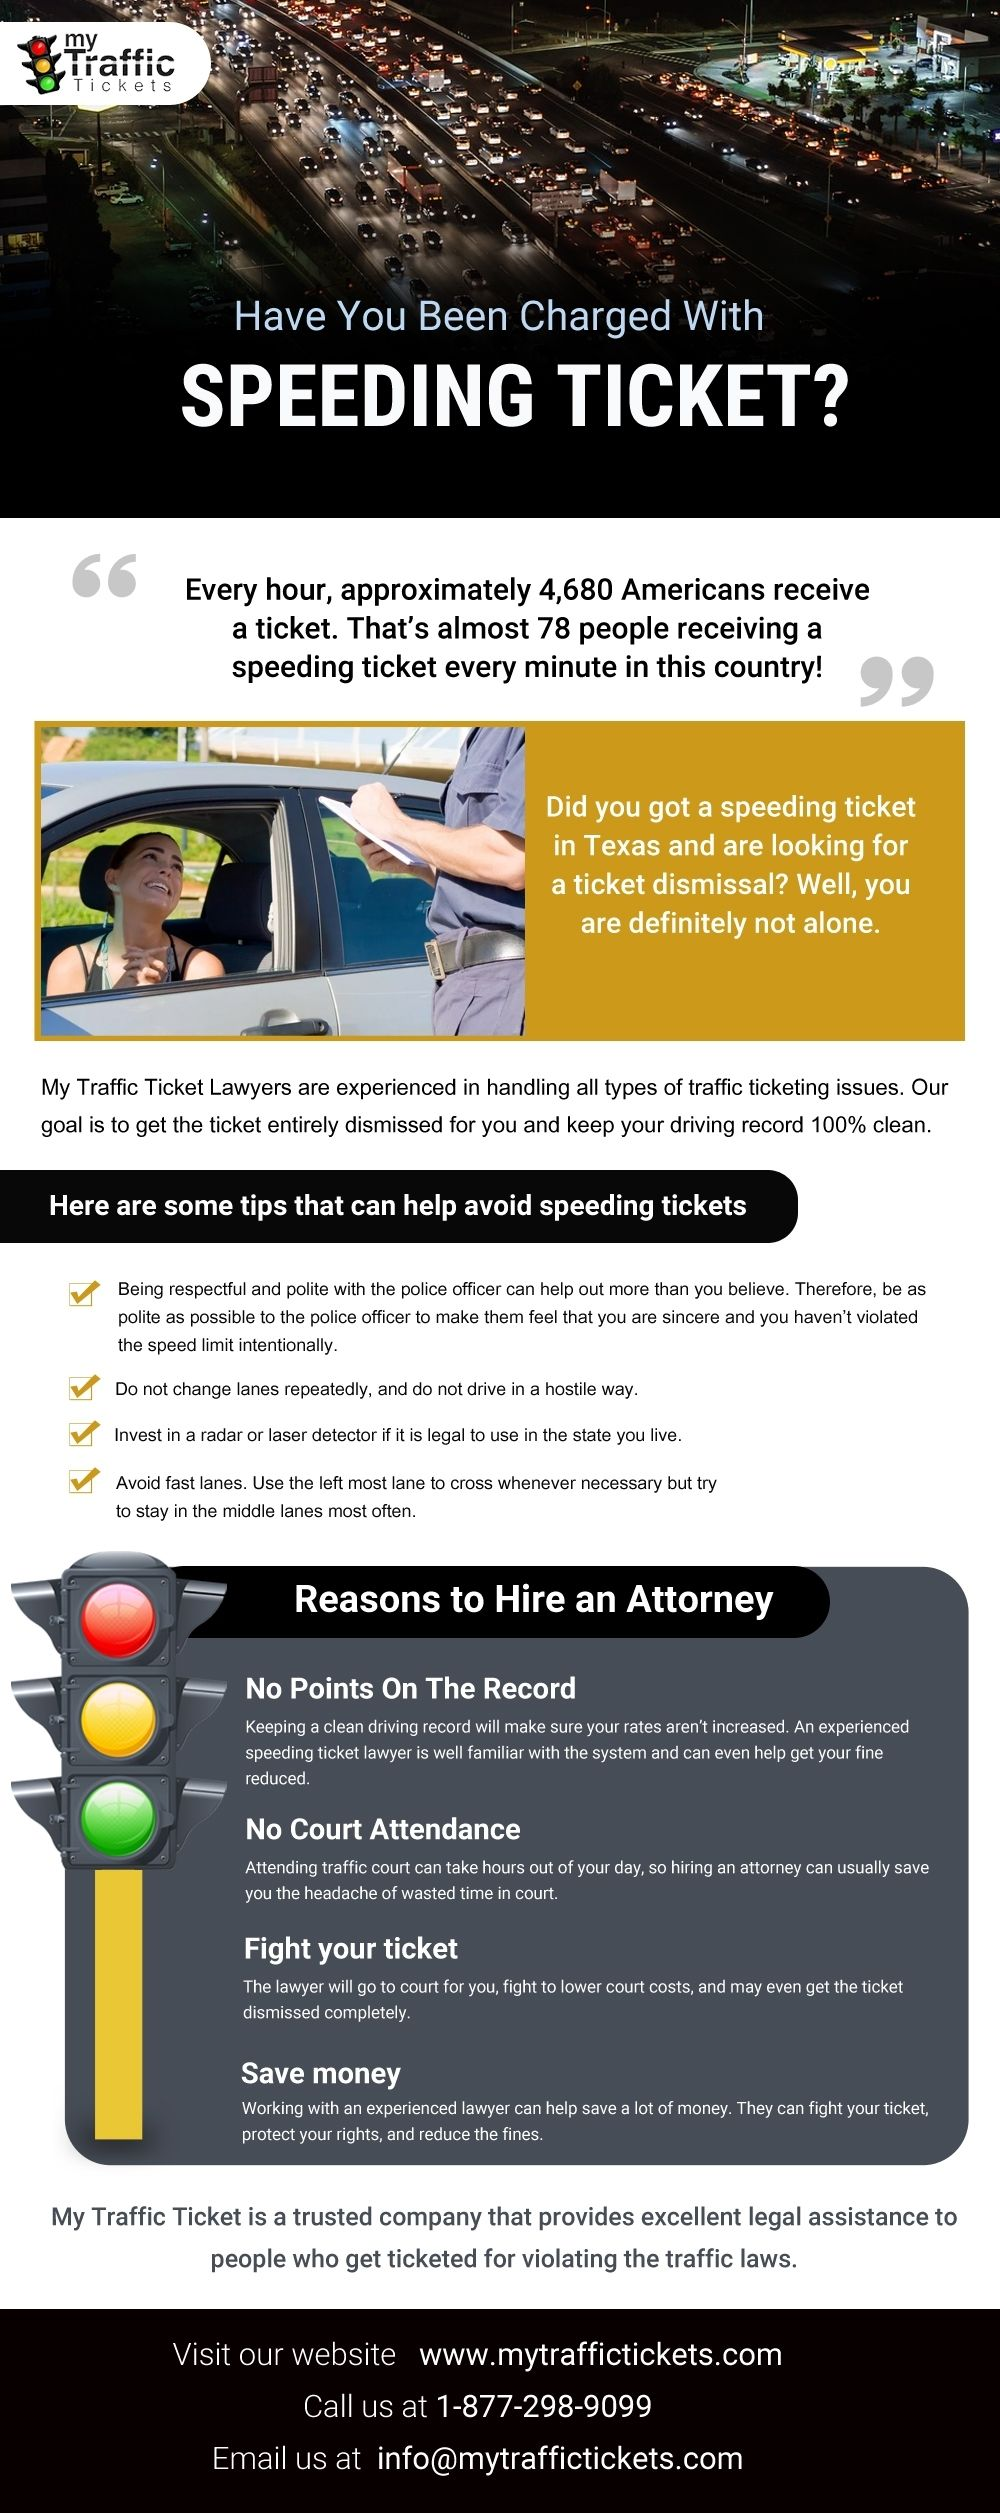 My Traffic Tickets Offers One Stop Destination To Take Care Of Your All Traffic Tickets With The Best Customer Servic Traffic Ticket Traffic Speeding Tickets